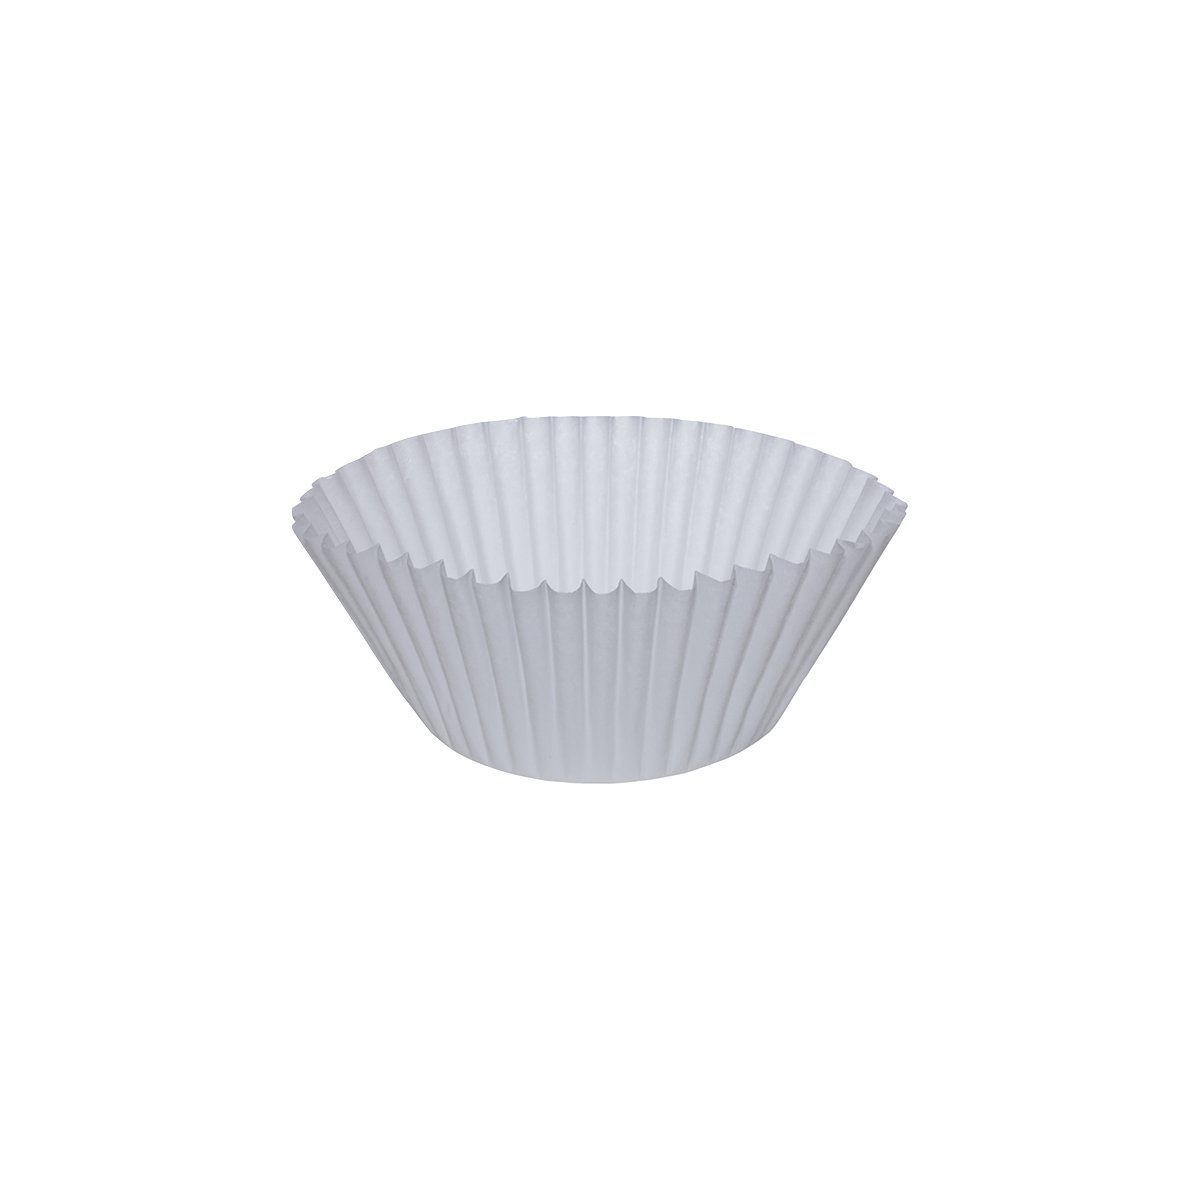 Wilbur Curtis Paper Filters 18.00 X 7.00, 500/Case - Commercial-Grade Paper Filters for Coffee Brewing - UP-3 (Pack of 500) by Wilbur Curtis